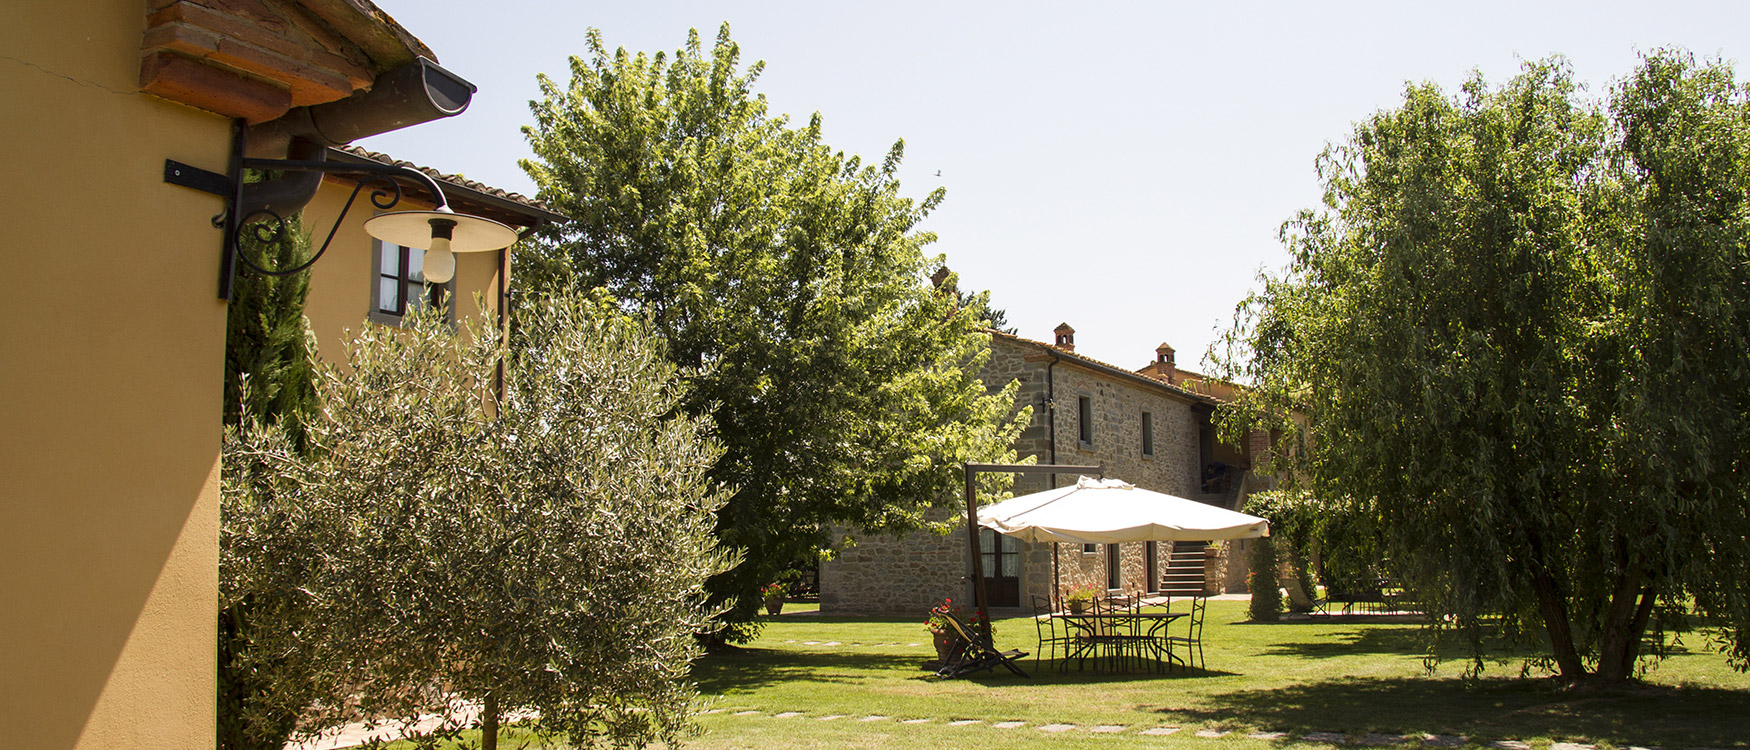 Rules and rates of vacation rental apartments in cortona - Lawton craigslist farm and garden ...